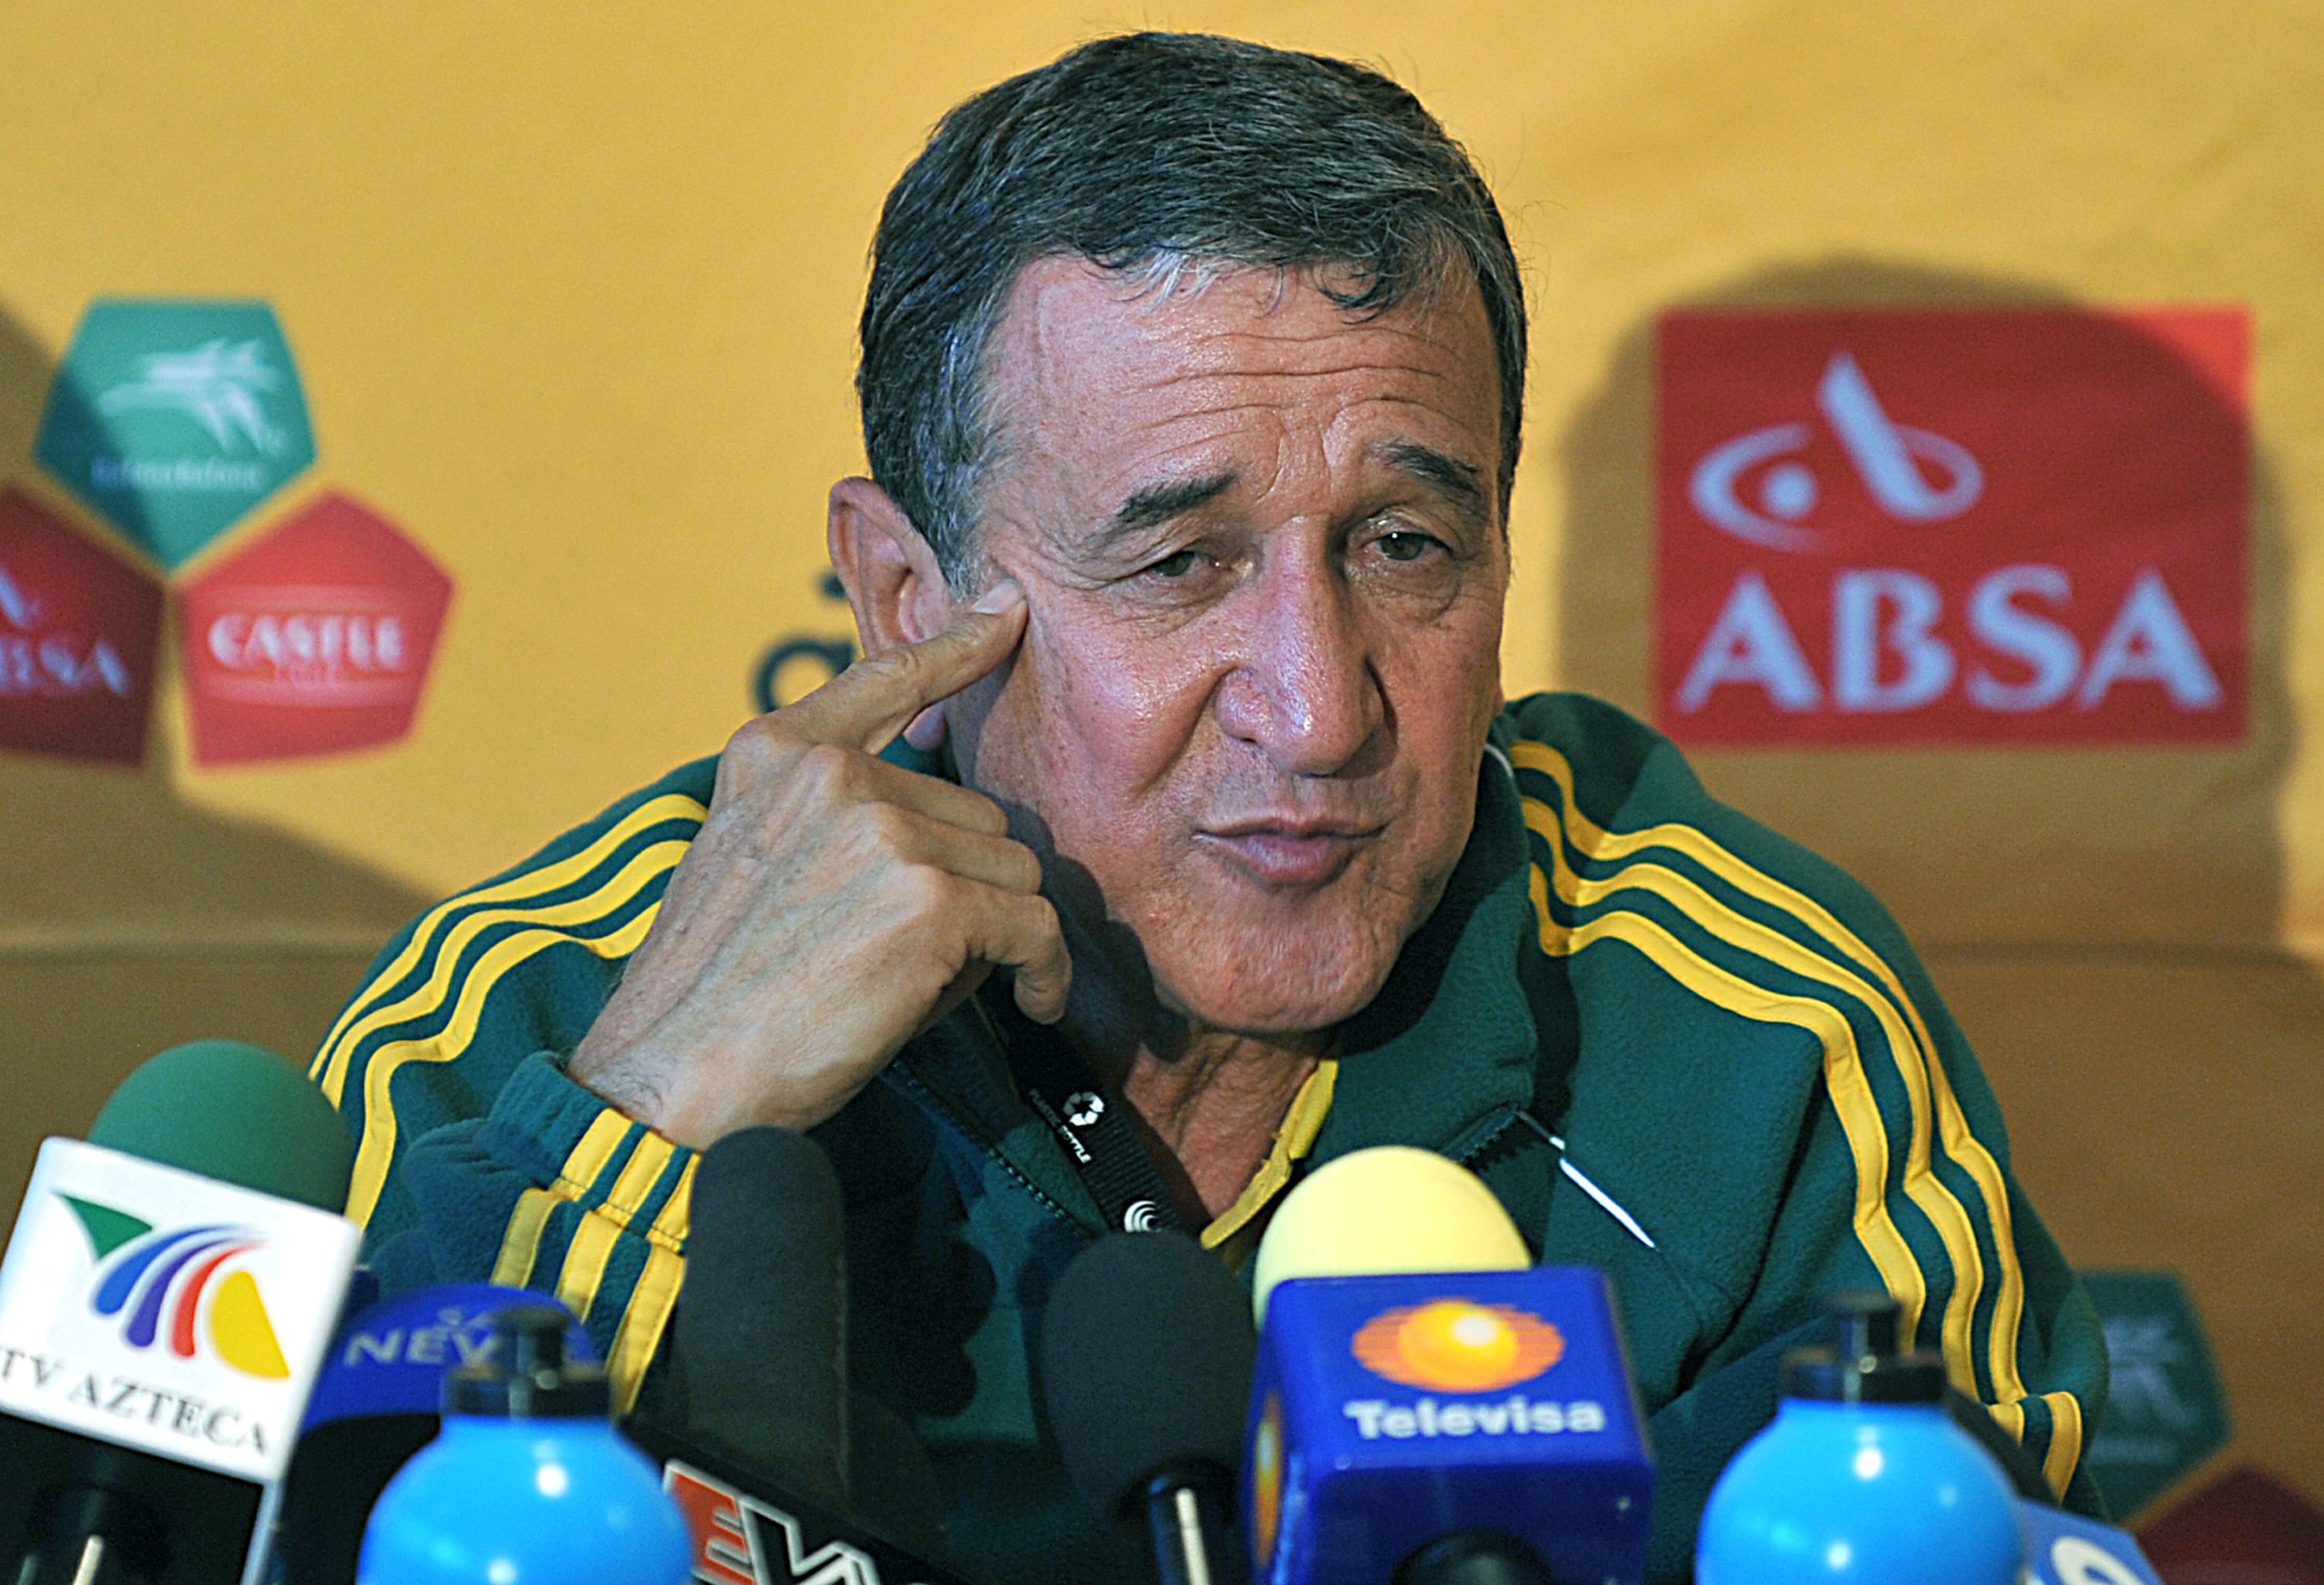 File:Carlos Alberto Parreira at University of the Witwatersrand 2010-06-04  4.jpg - Wikimedia Commons